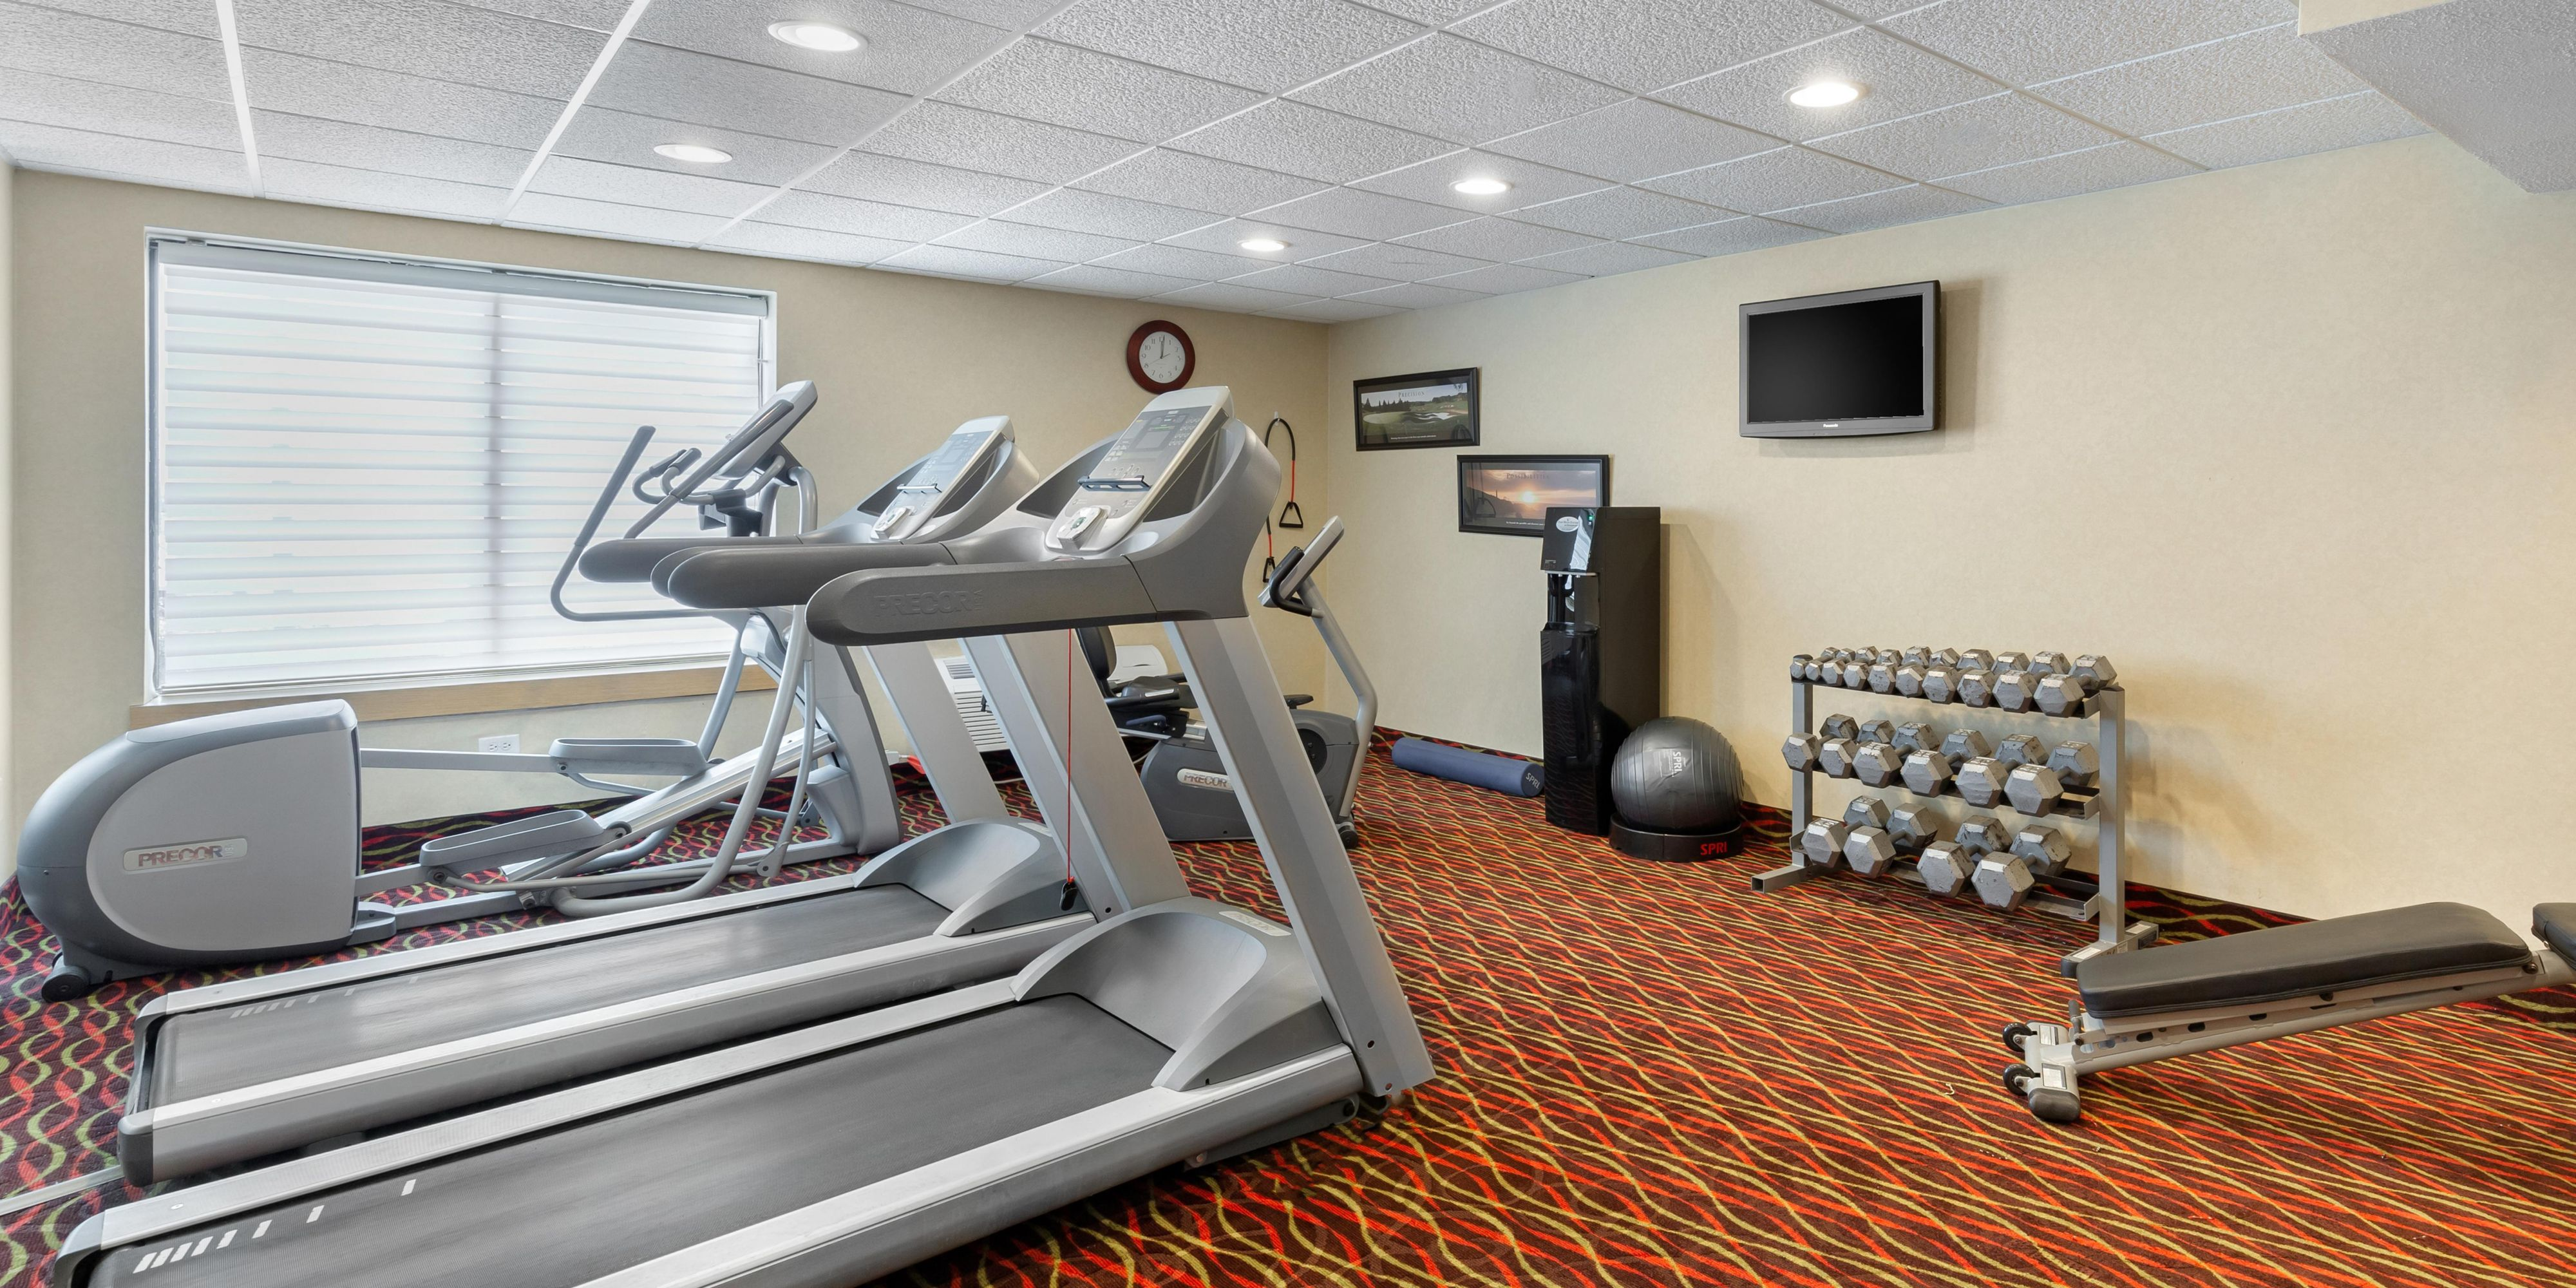 Hotels in Downers Grove, IL Near Chicago - Holiday Inn Express